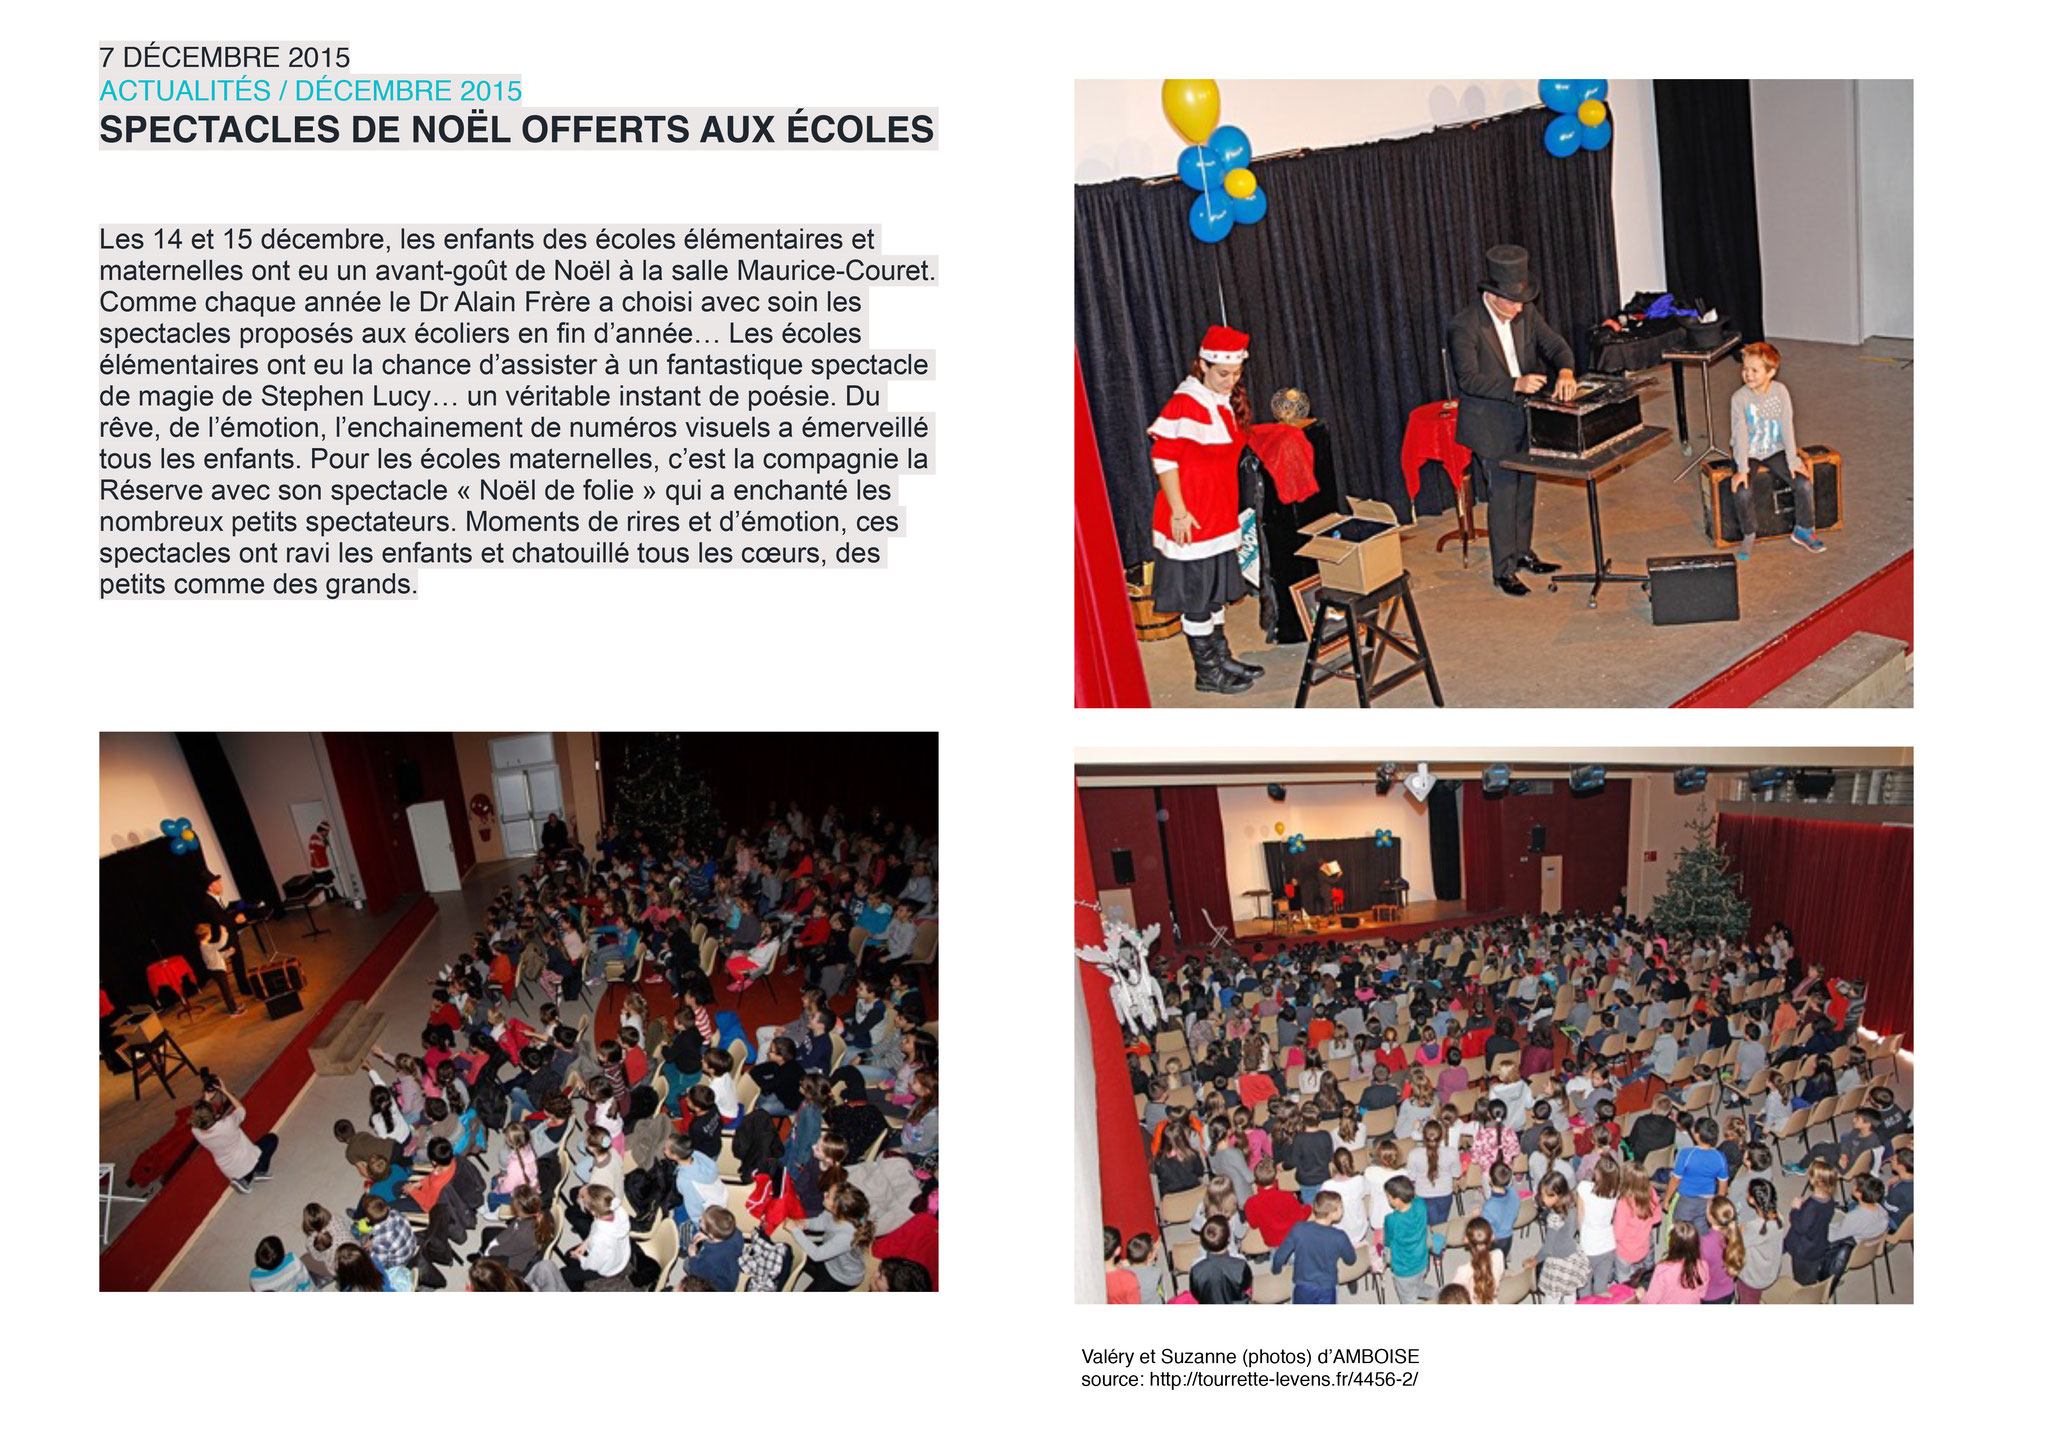 Article sur le journal de Tourette-Levens- Spectacle de magie de Stephen Lucy- Ecole de Tourrette-Levens-2015